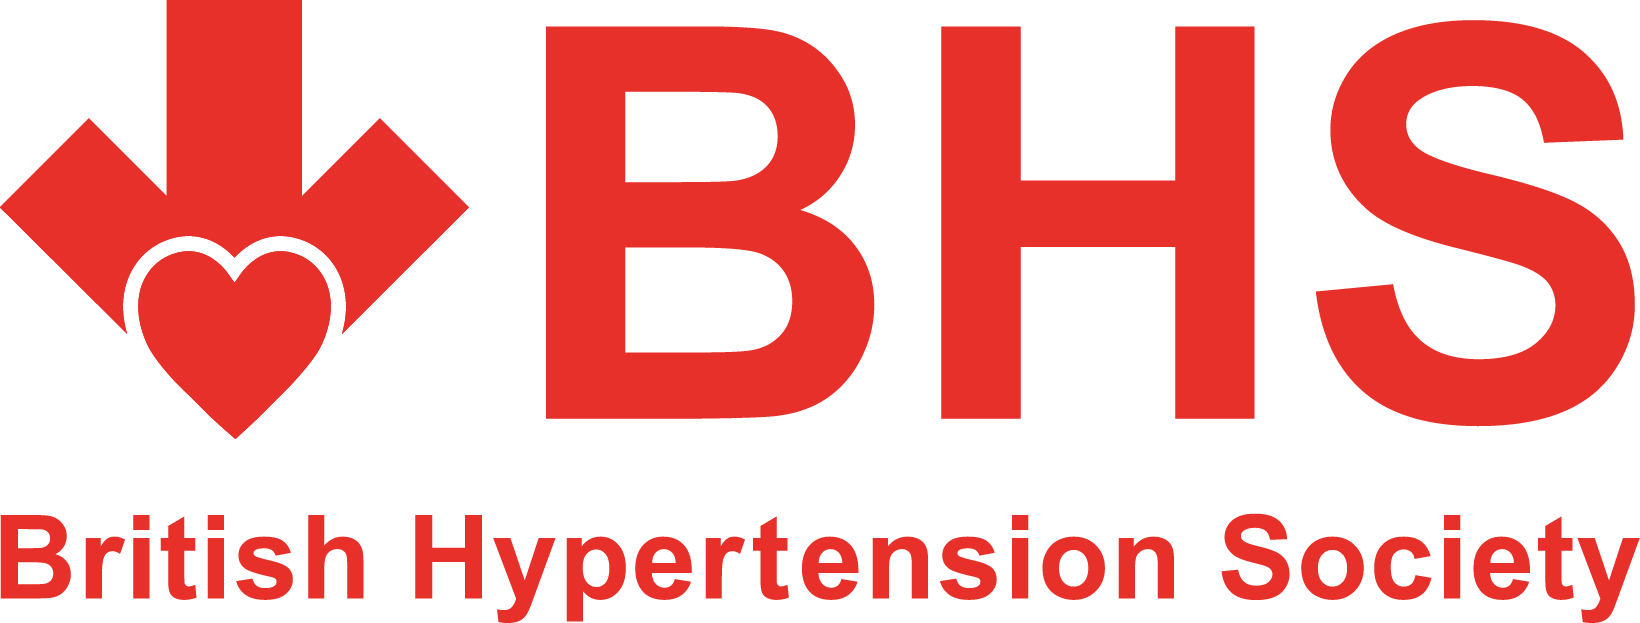 British Hypertension Society logo